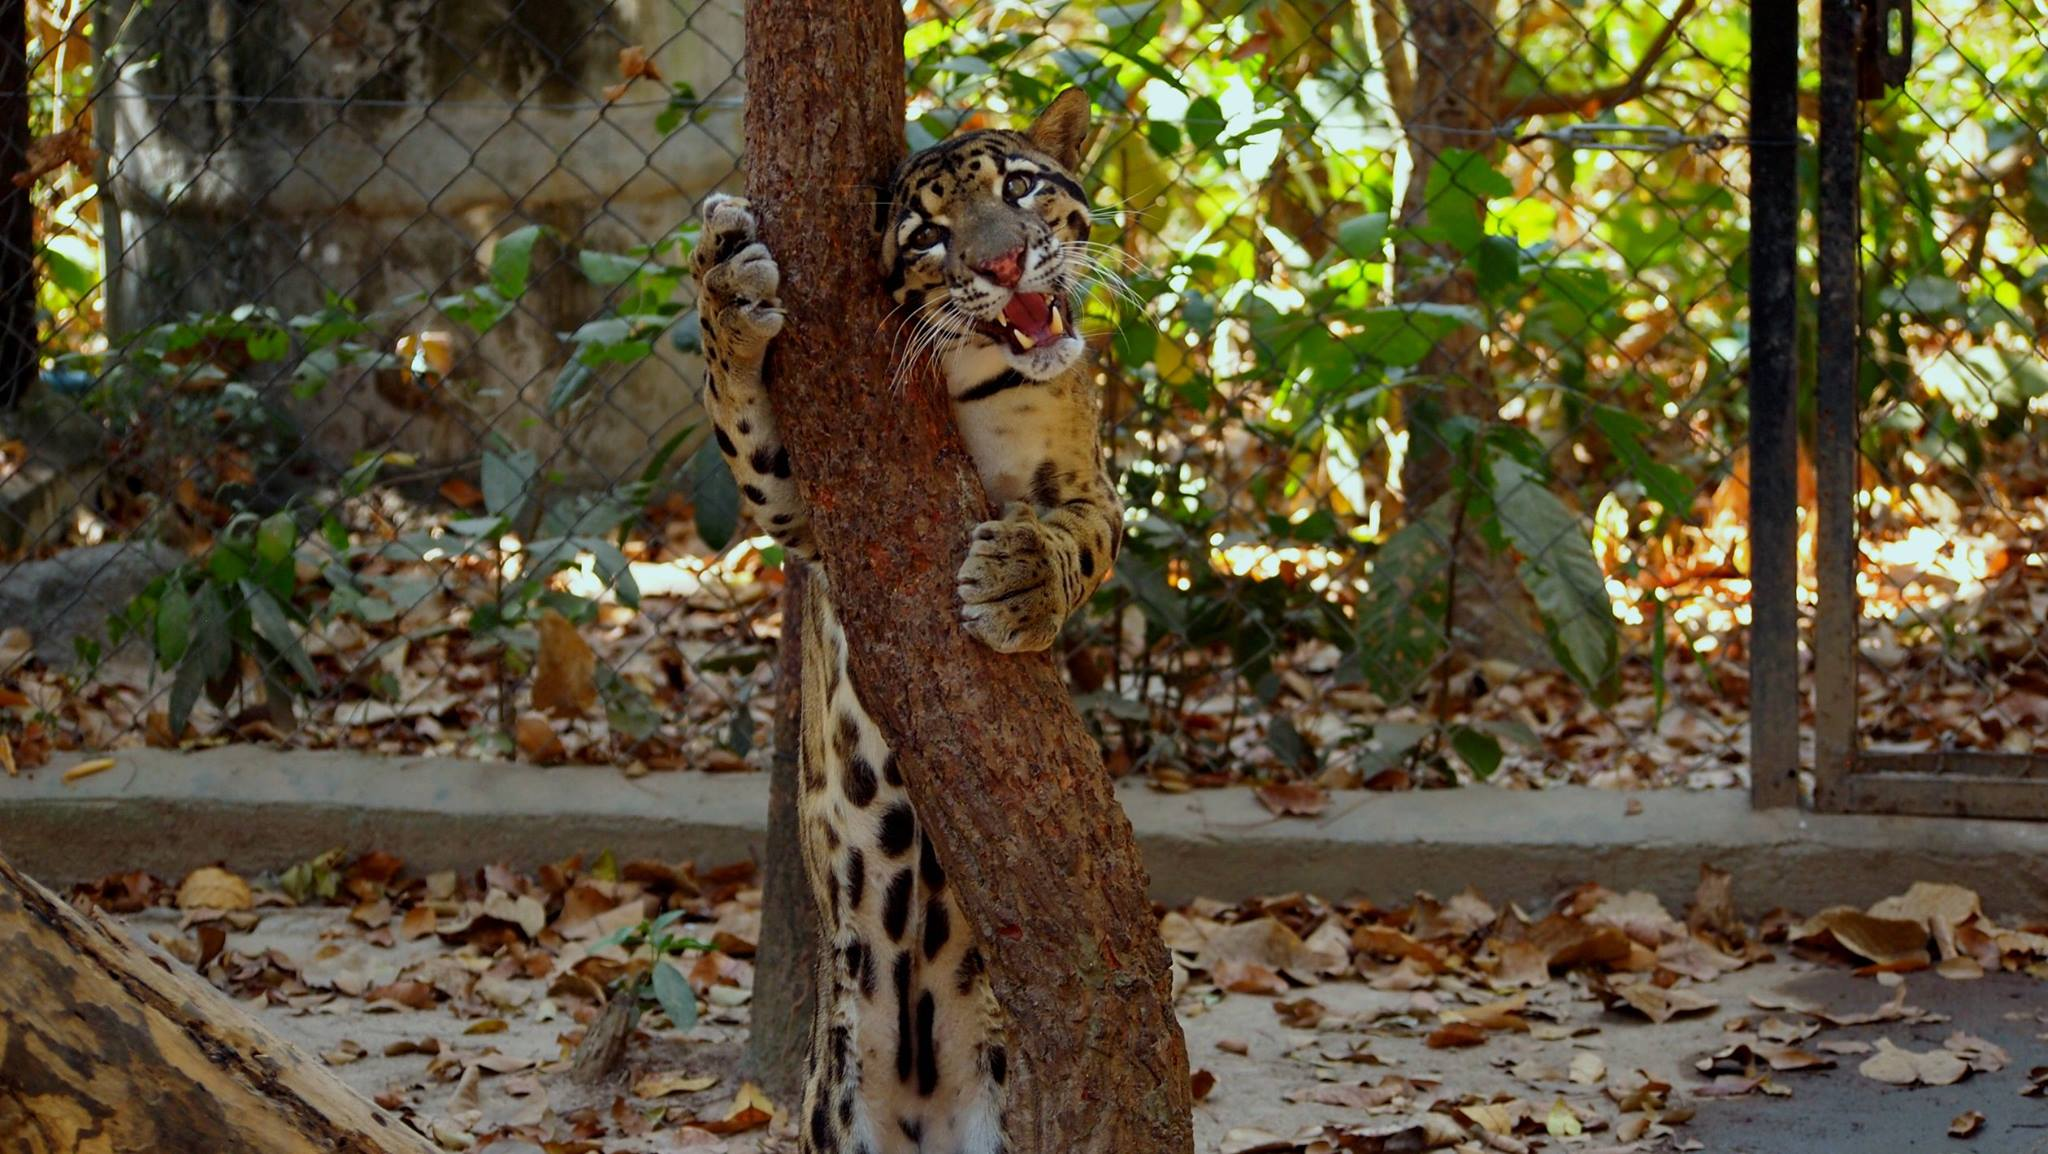 what is behavioral enrichment? What is behavioral enrichment? Scent enrichment for clouded leopard popork